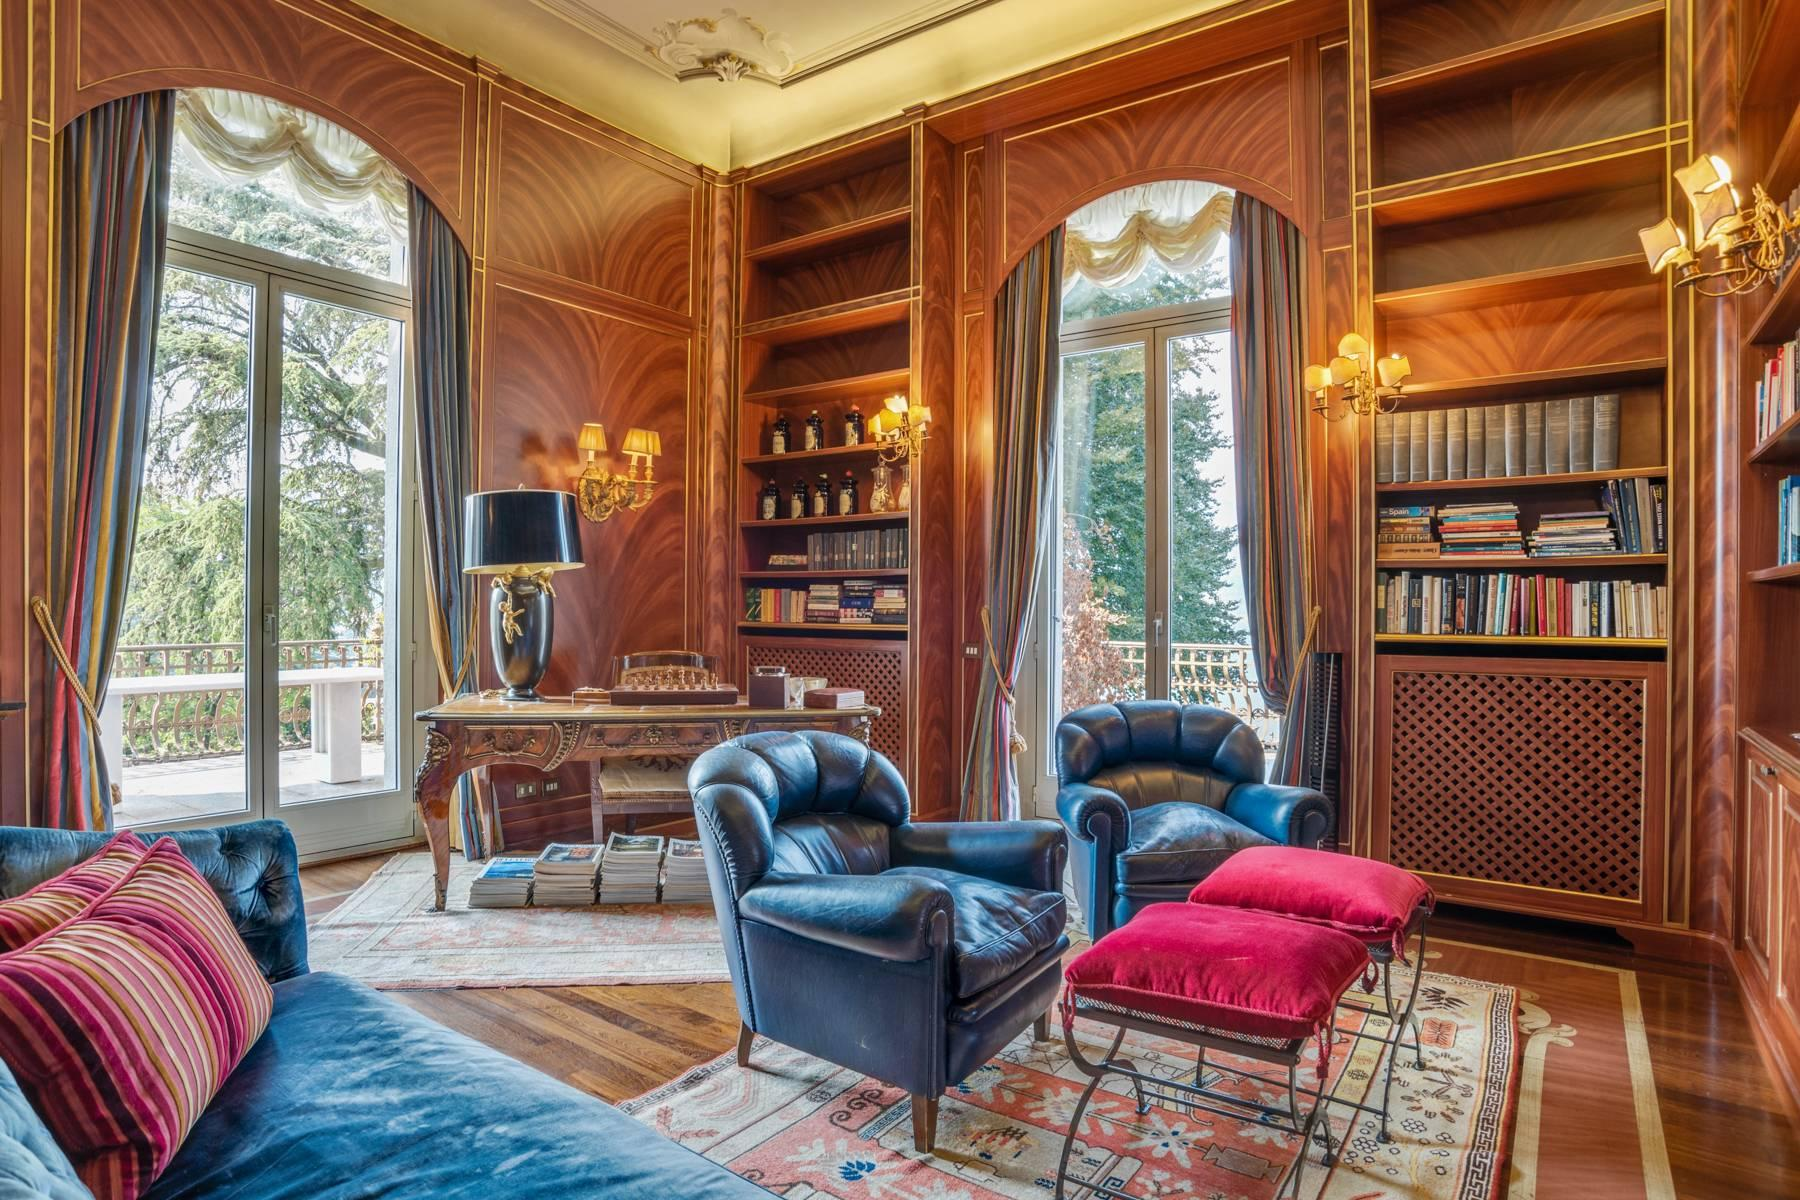 Fascinating apartment in an exclusive villa of the early 1900s - 24